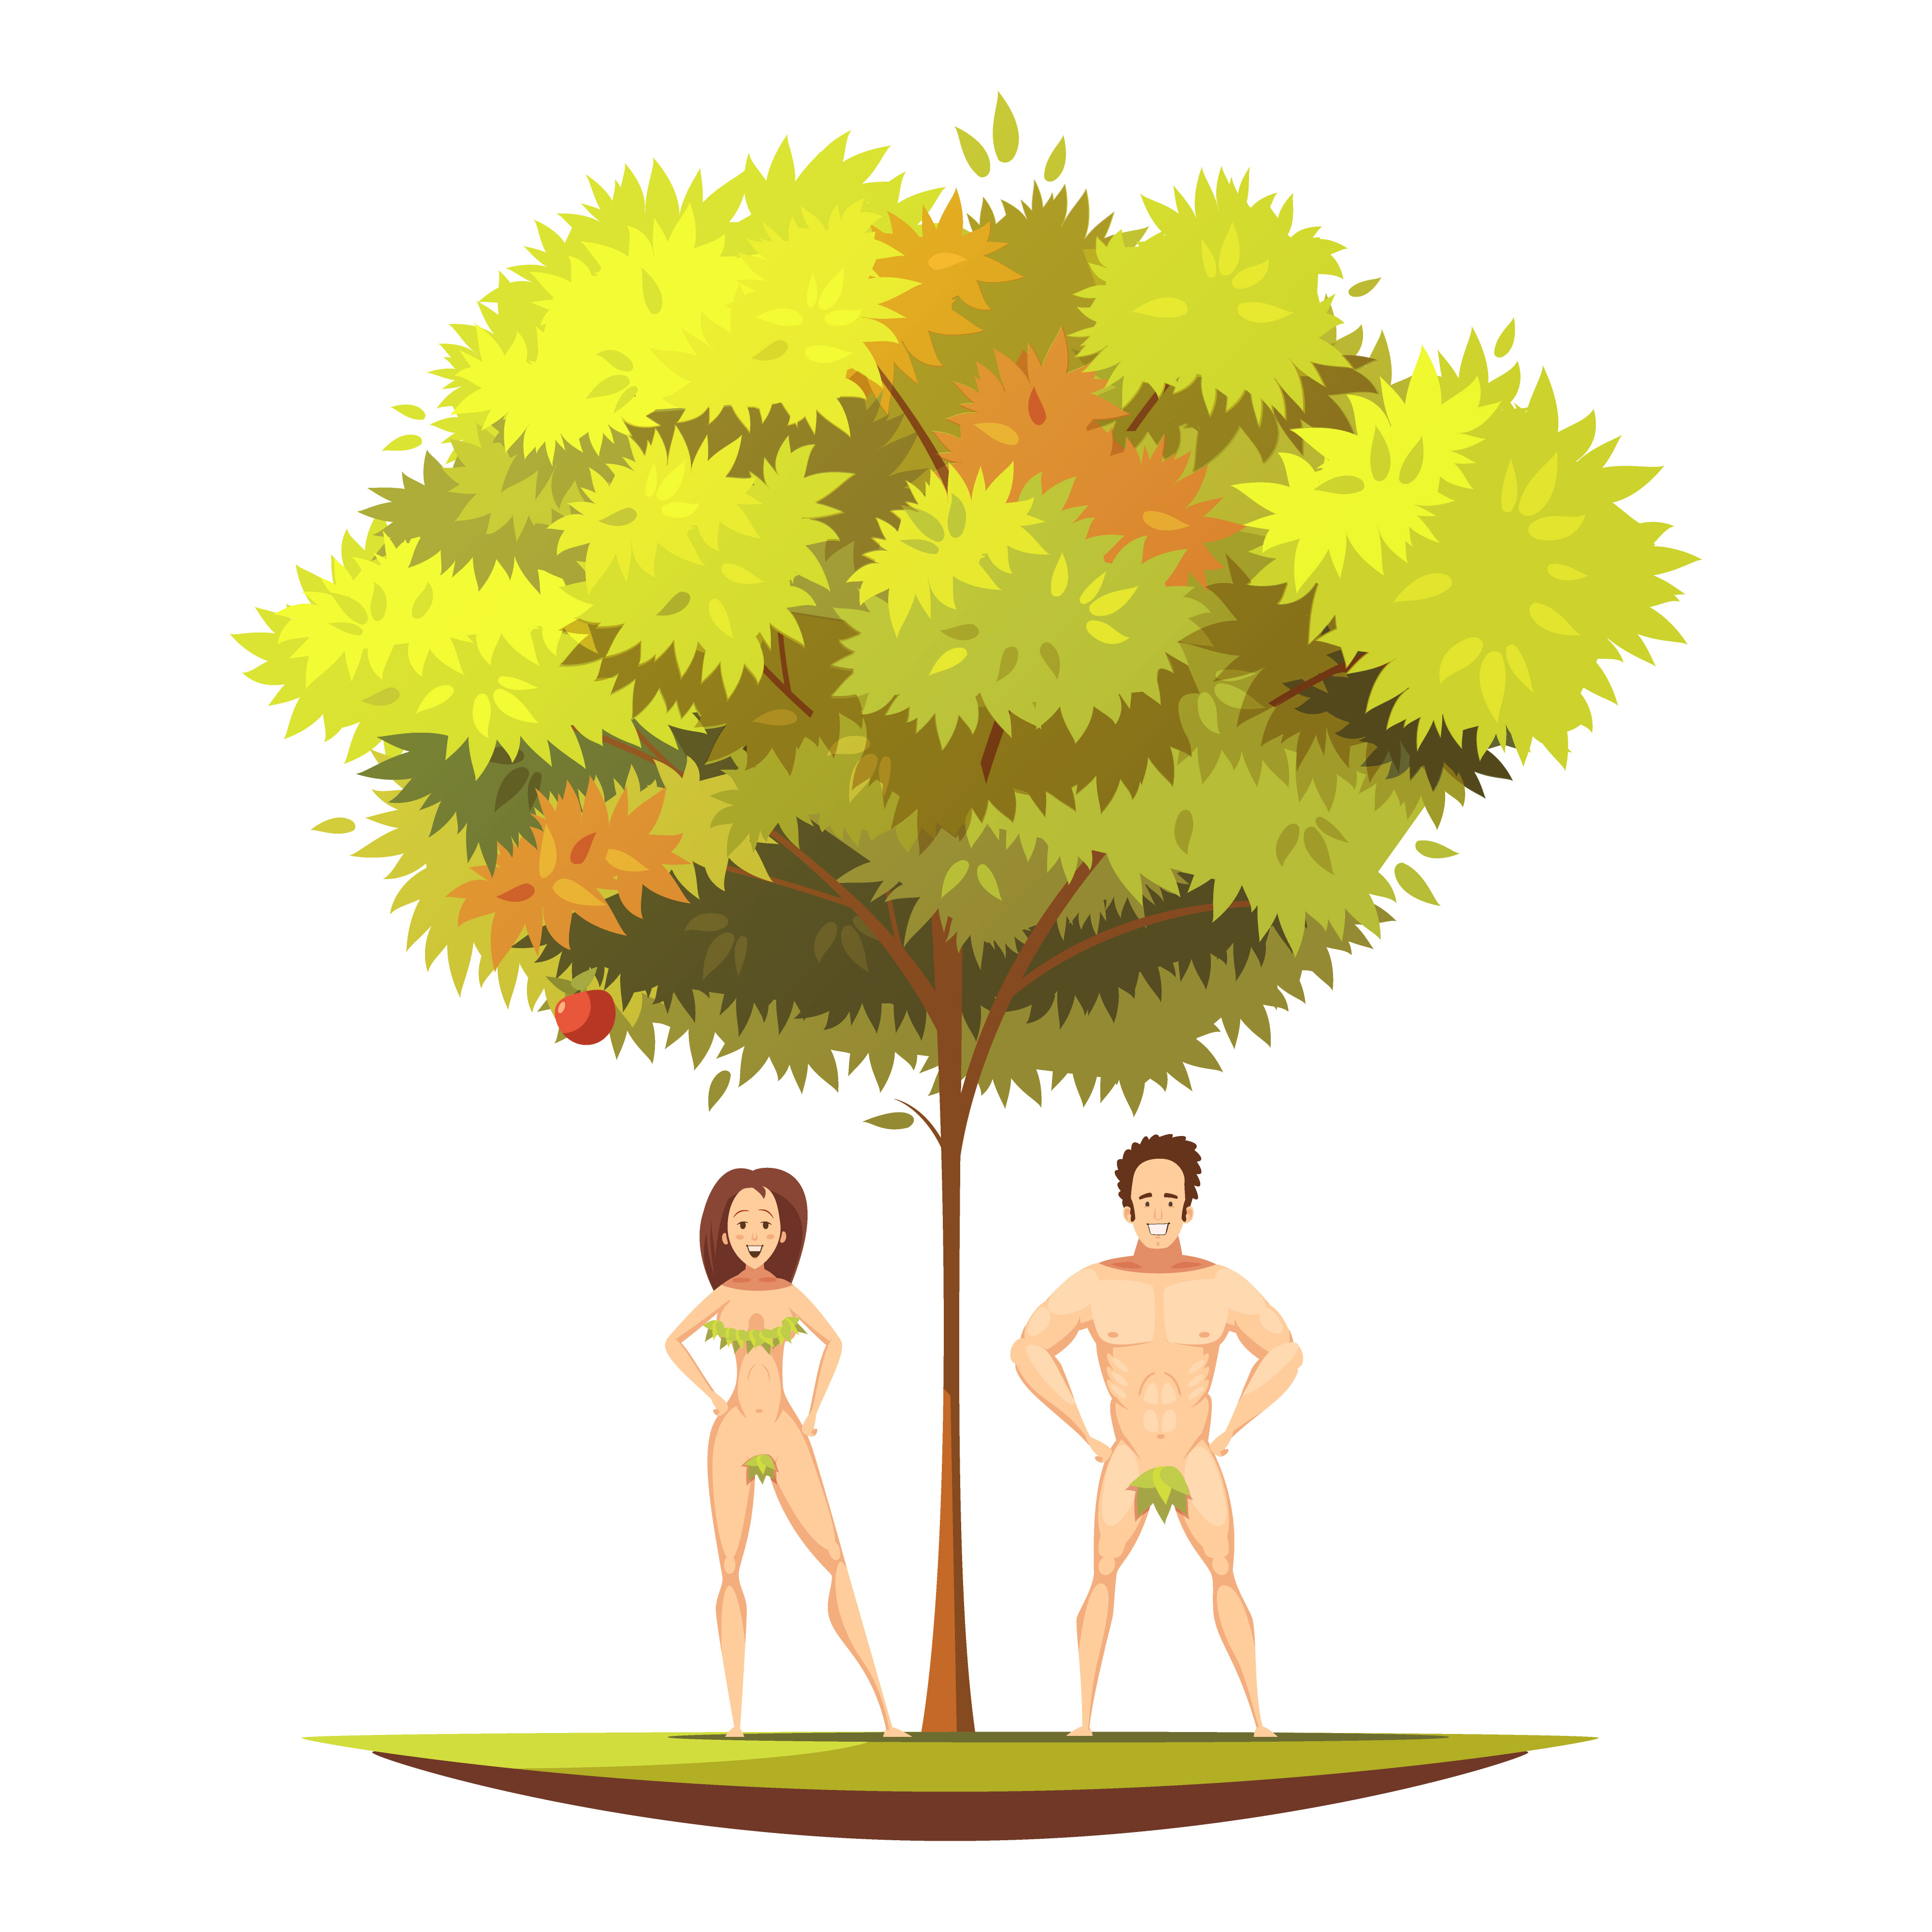 Adam Eve Under Apple Tree Cartoon Illustration Download Free Vectors Clipart Graphics Vector Art This file is distributed under the our standard license license. vecteezy